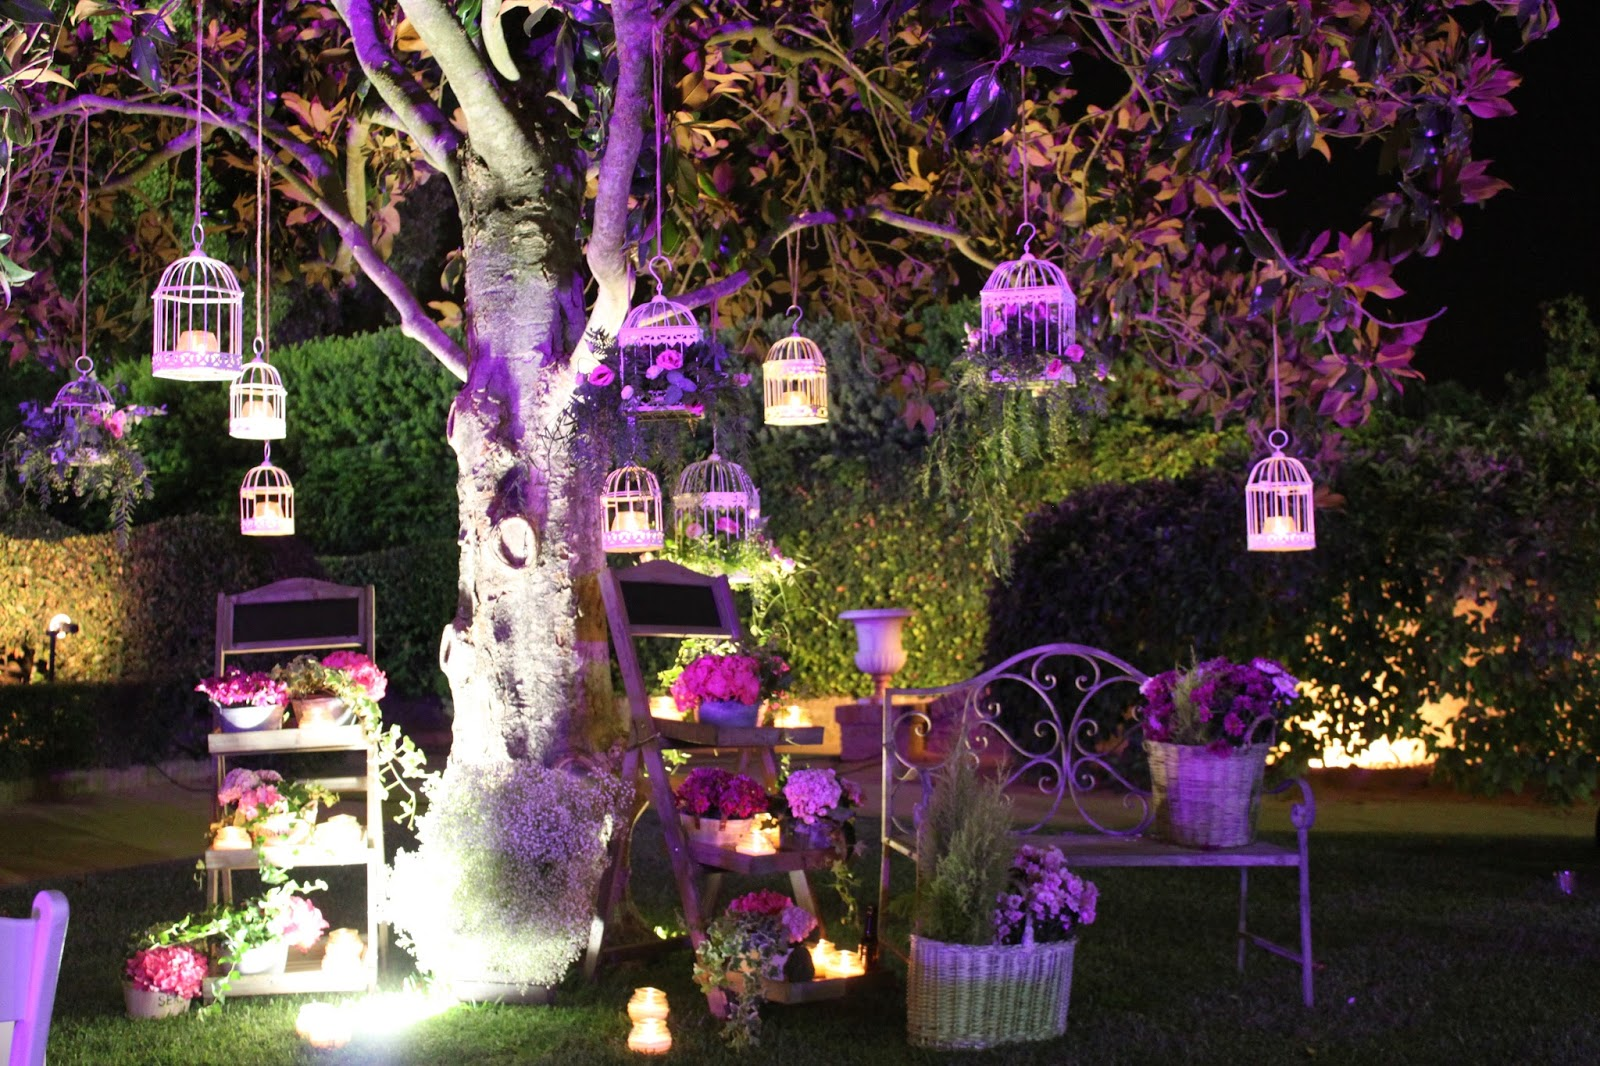 10 tendencias de boda de 2016 quiero mi fiesta for Decoracion tendencias 2016